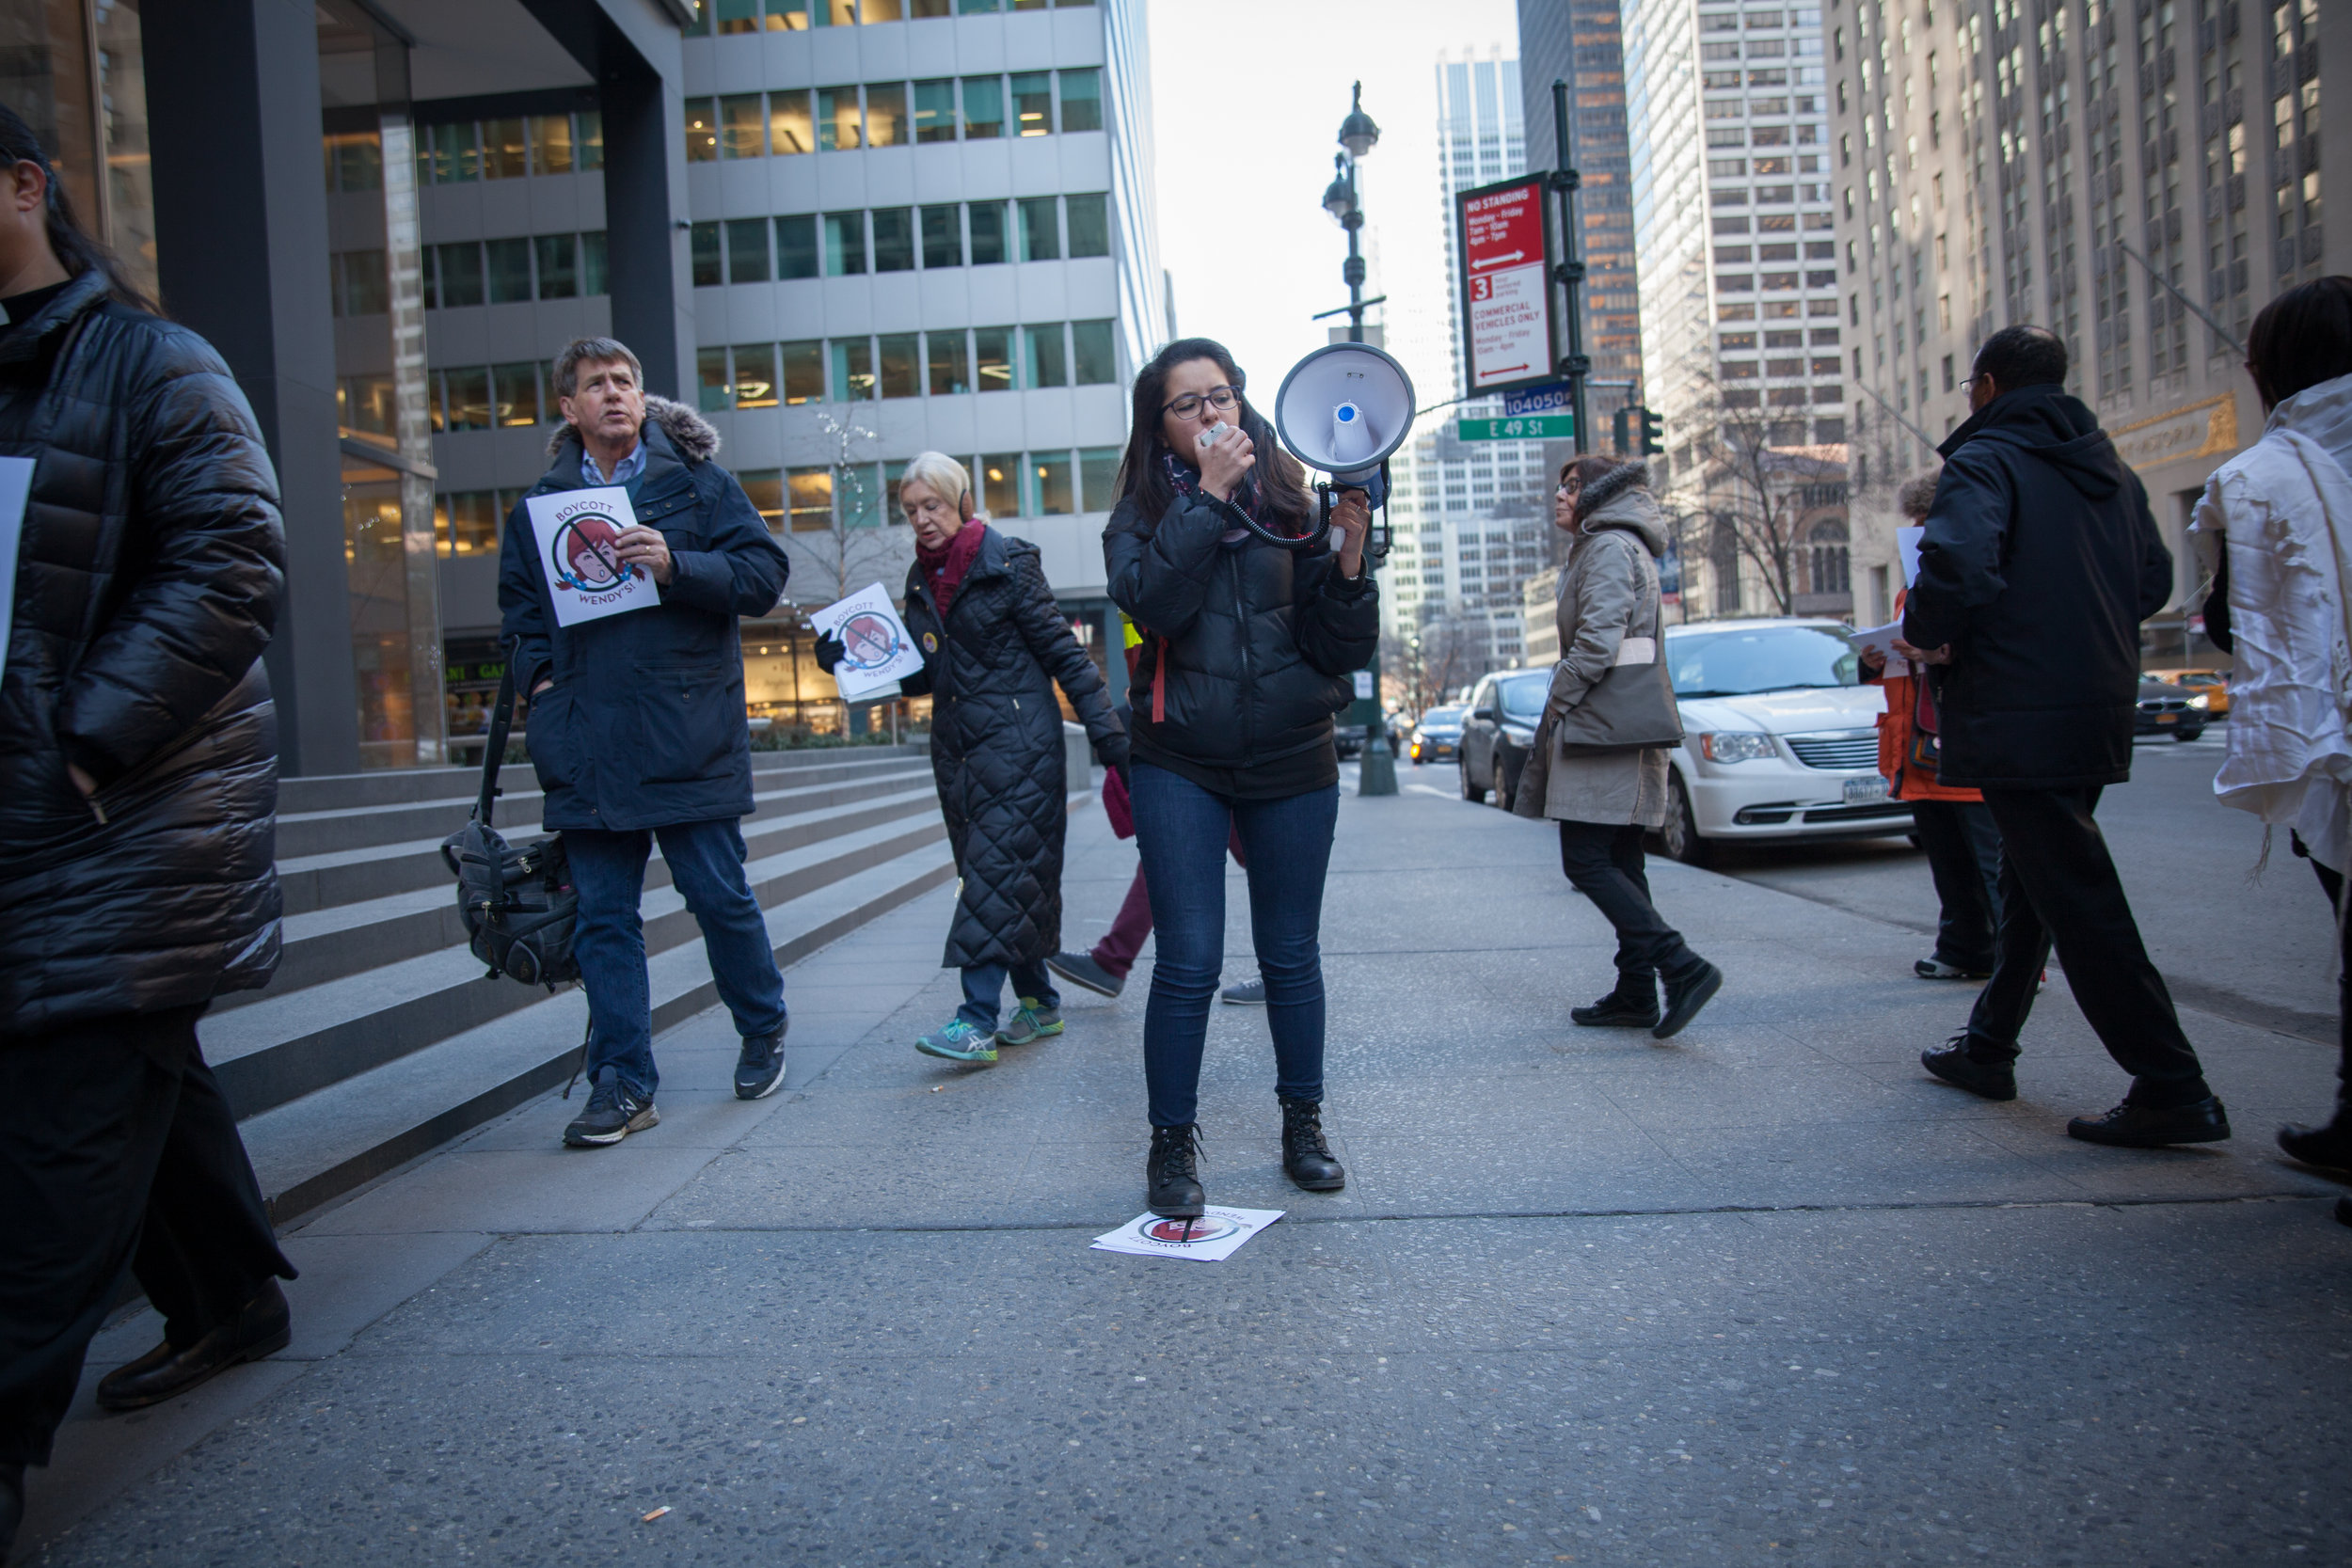 CIW Clergy Fast for Wendys_NYC-44.jpg